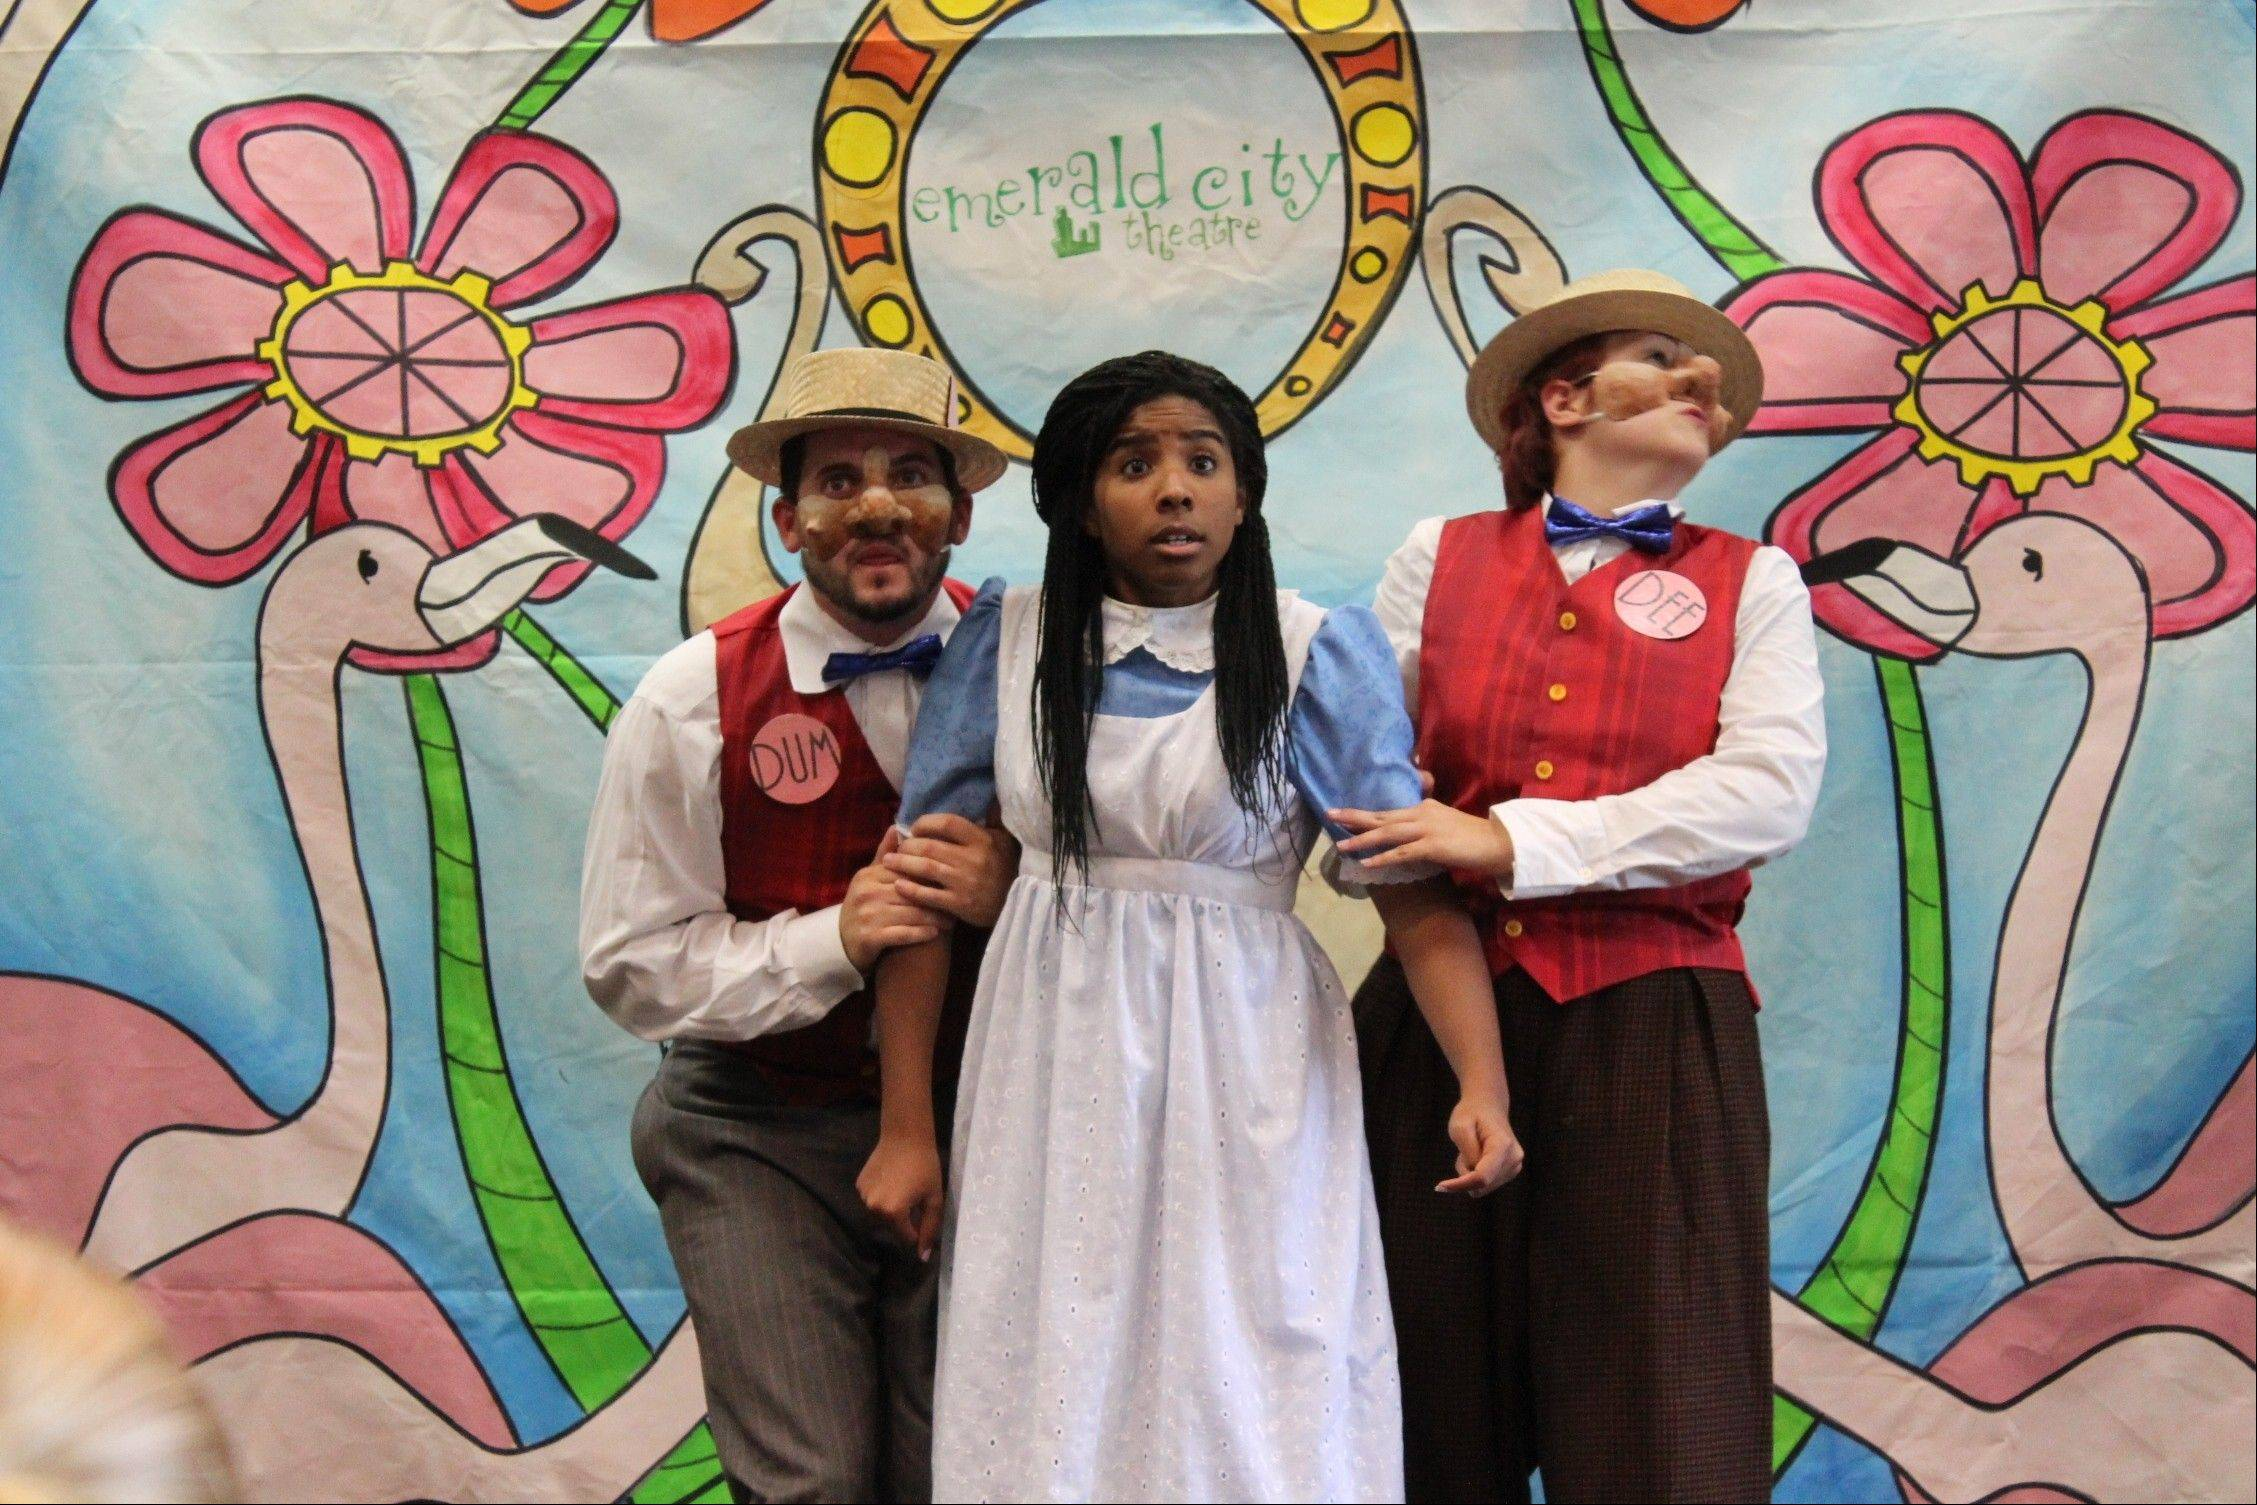 On Monday, Oct. 8, Daze Off presents Alice In Wonderland at 10:30 a.m. at Cutting Hall Performing Arts Center, in Palatine. Come with Alice on the adventure of her life in this adaptation perfect for family audiences.